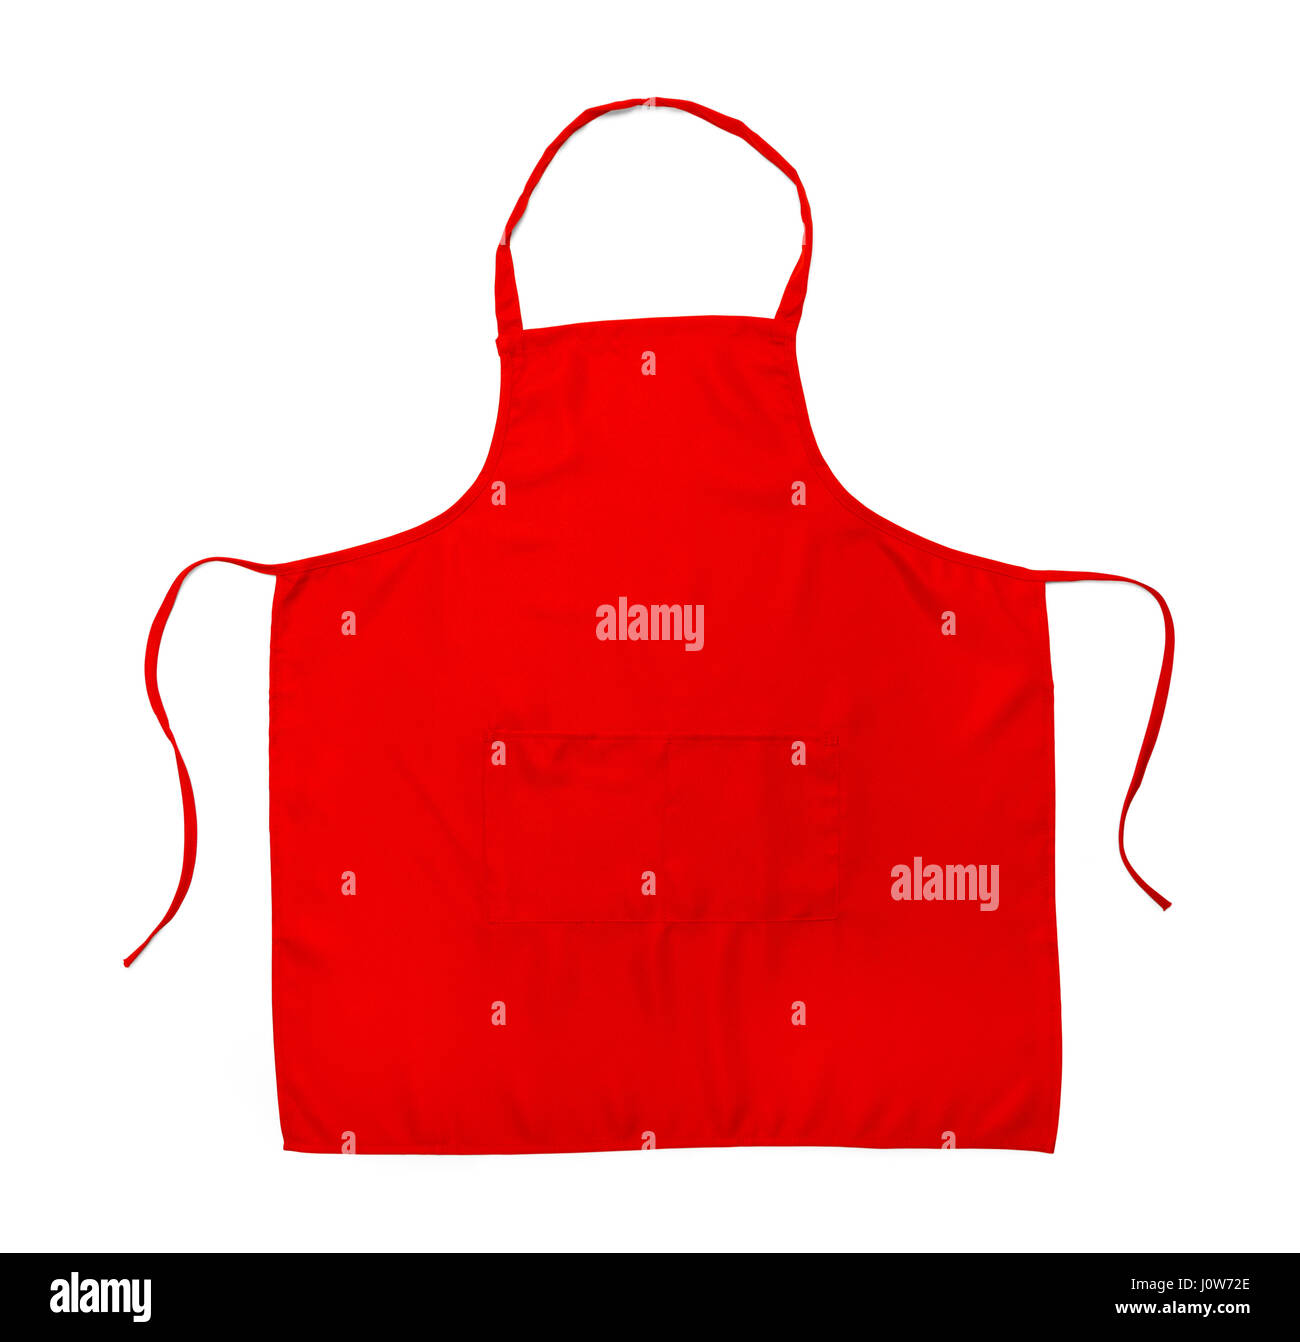 Red Cooking Apron Isolated on White Background. - Stock Image